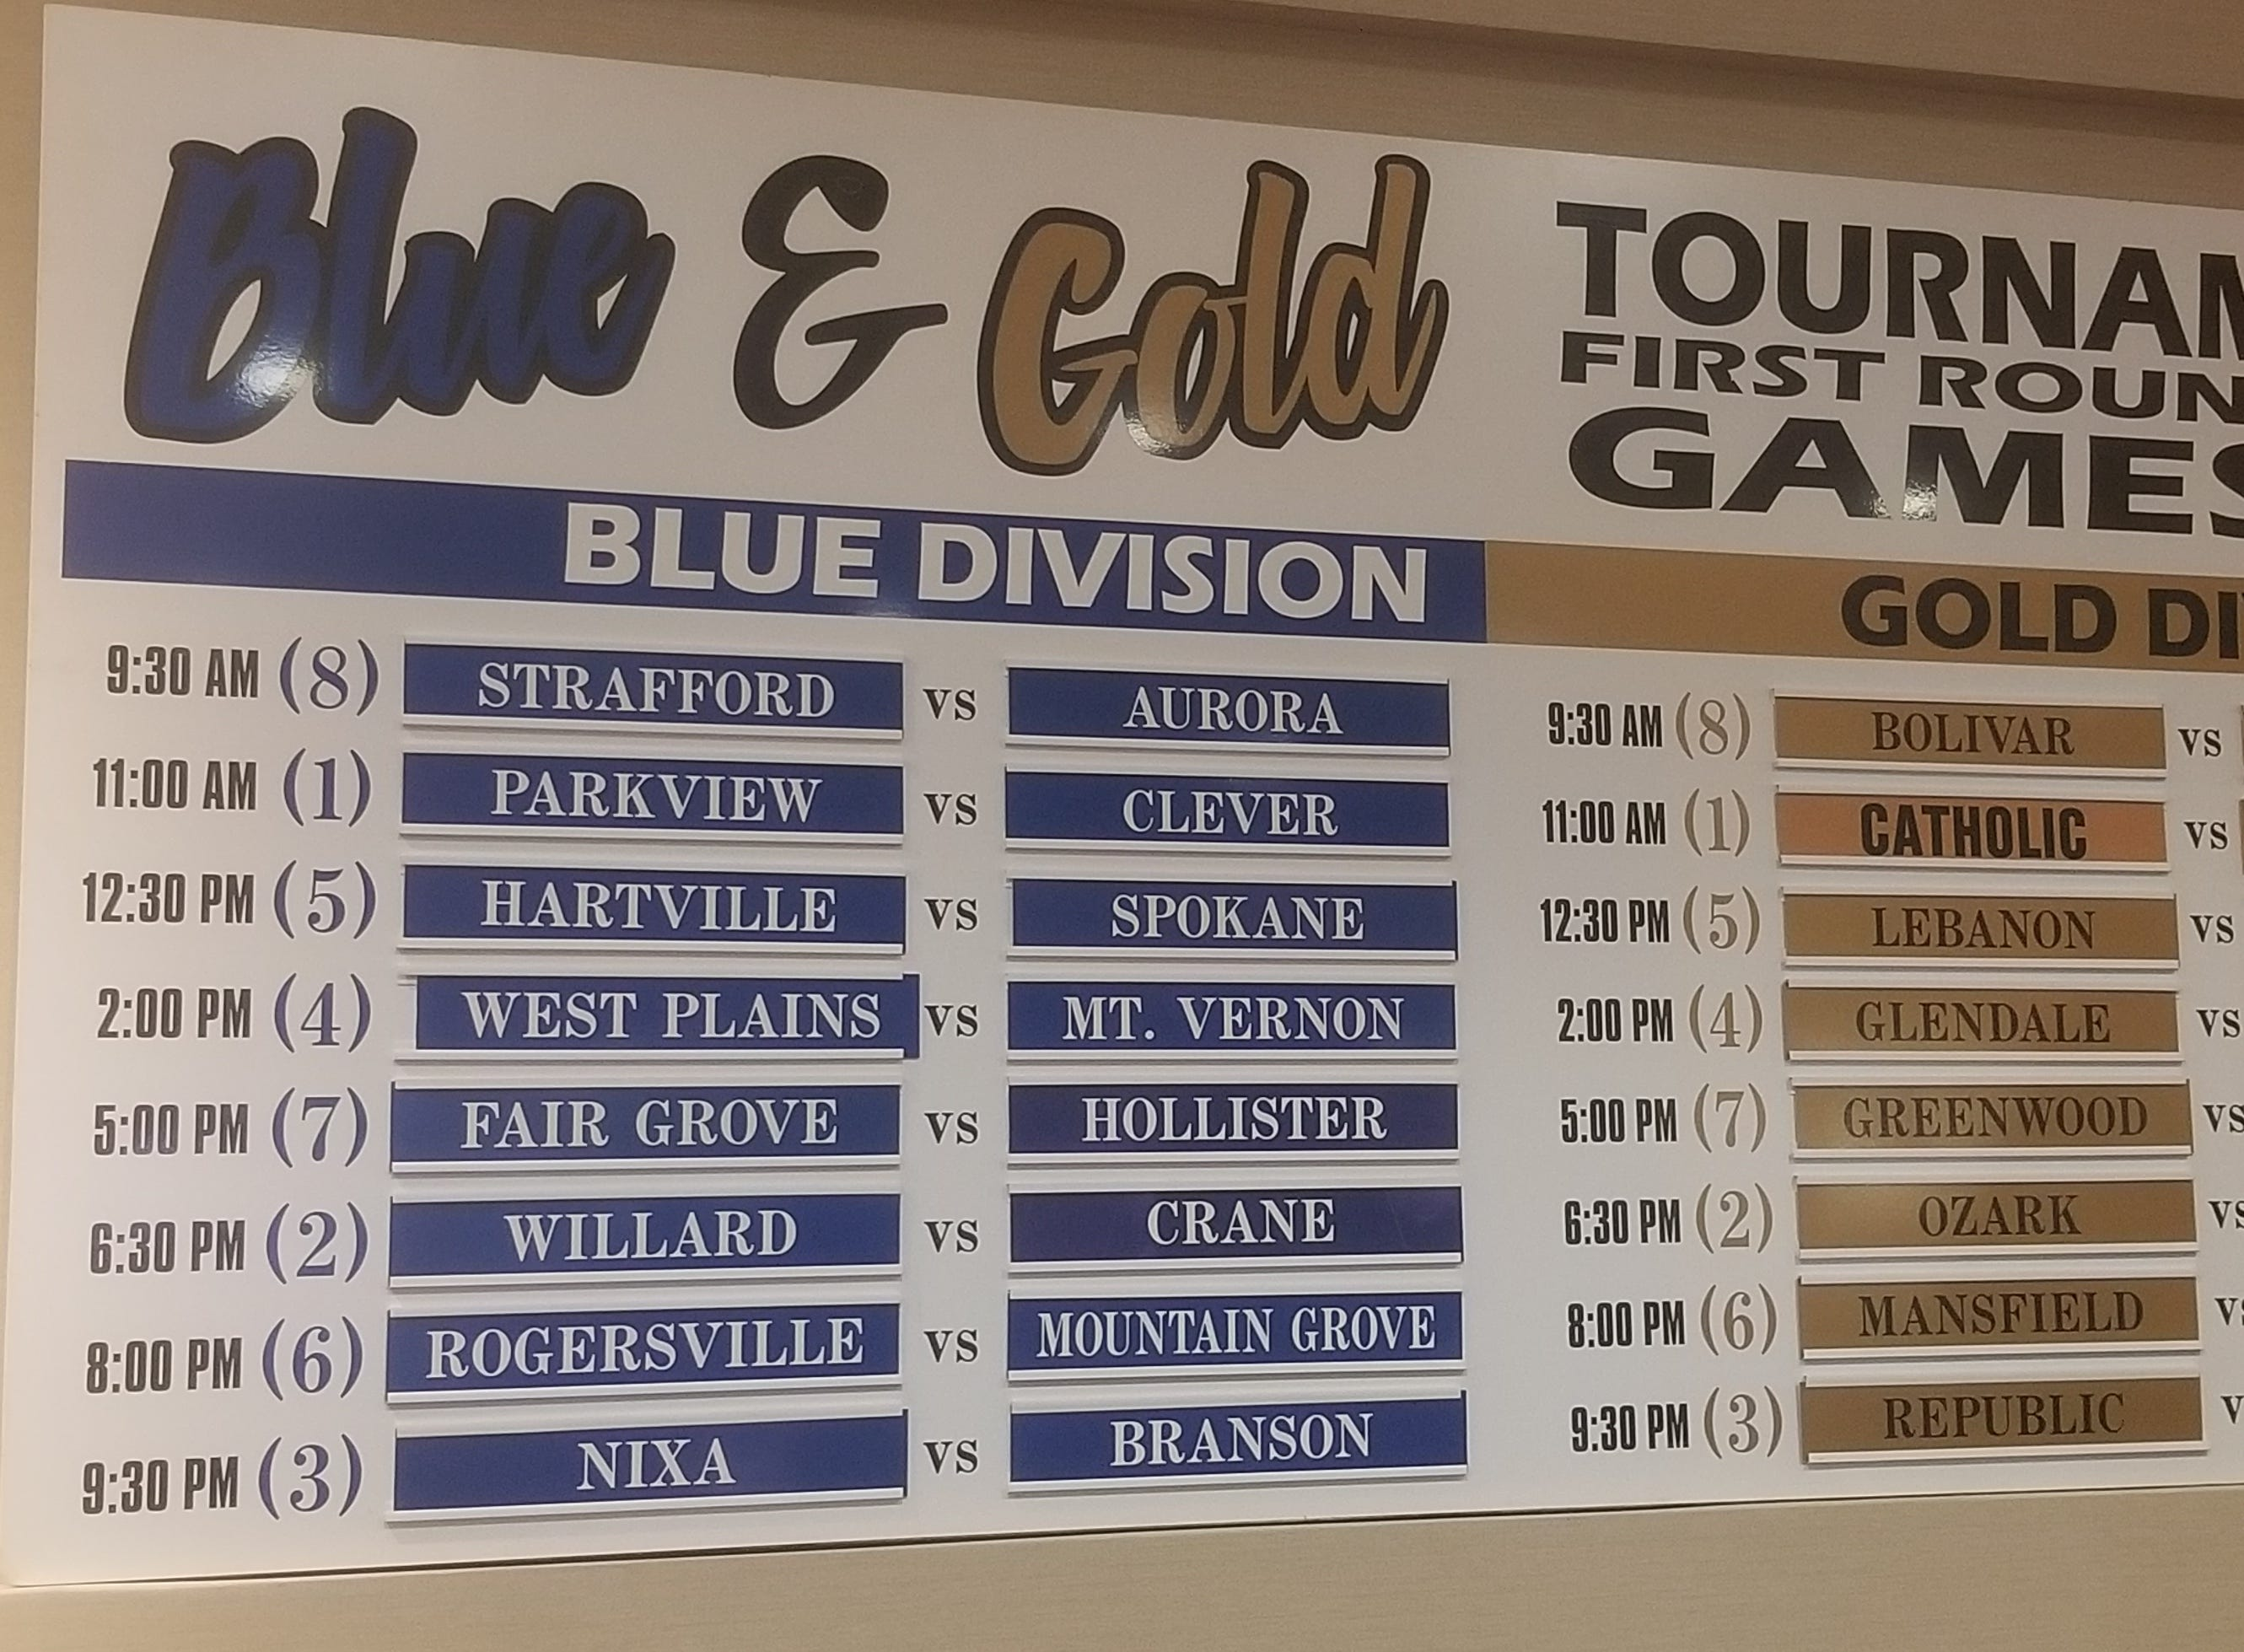 2018 Blue and Gold Basketball Tournament brackets released